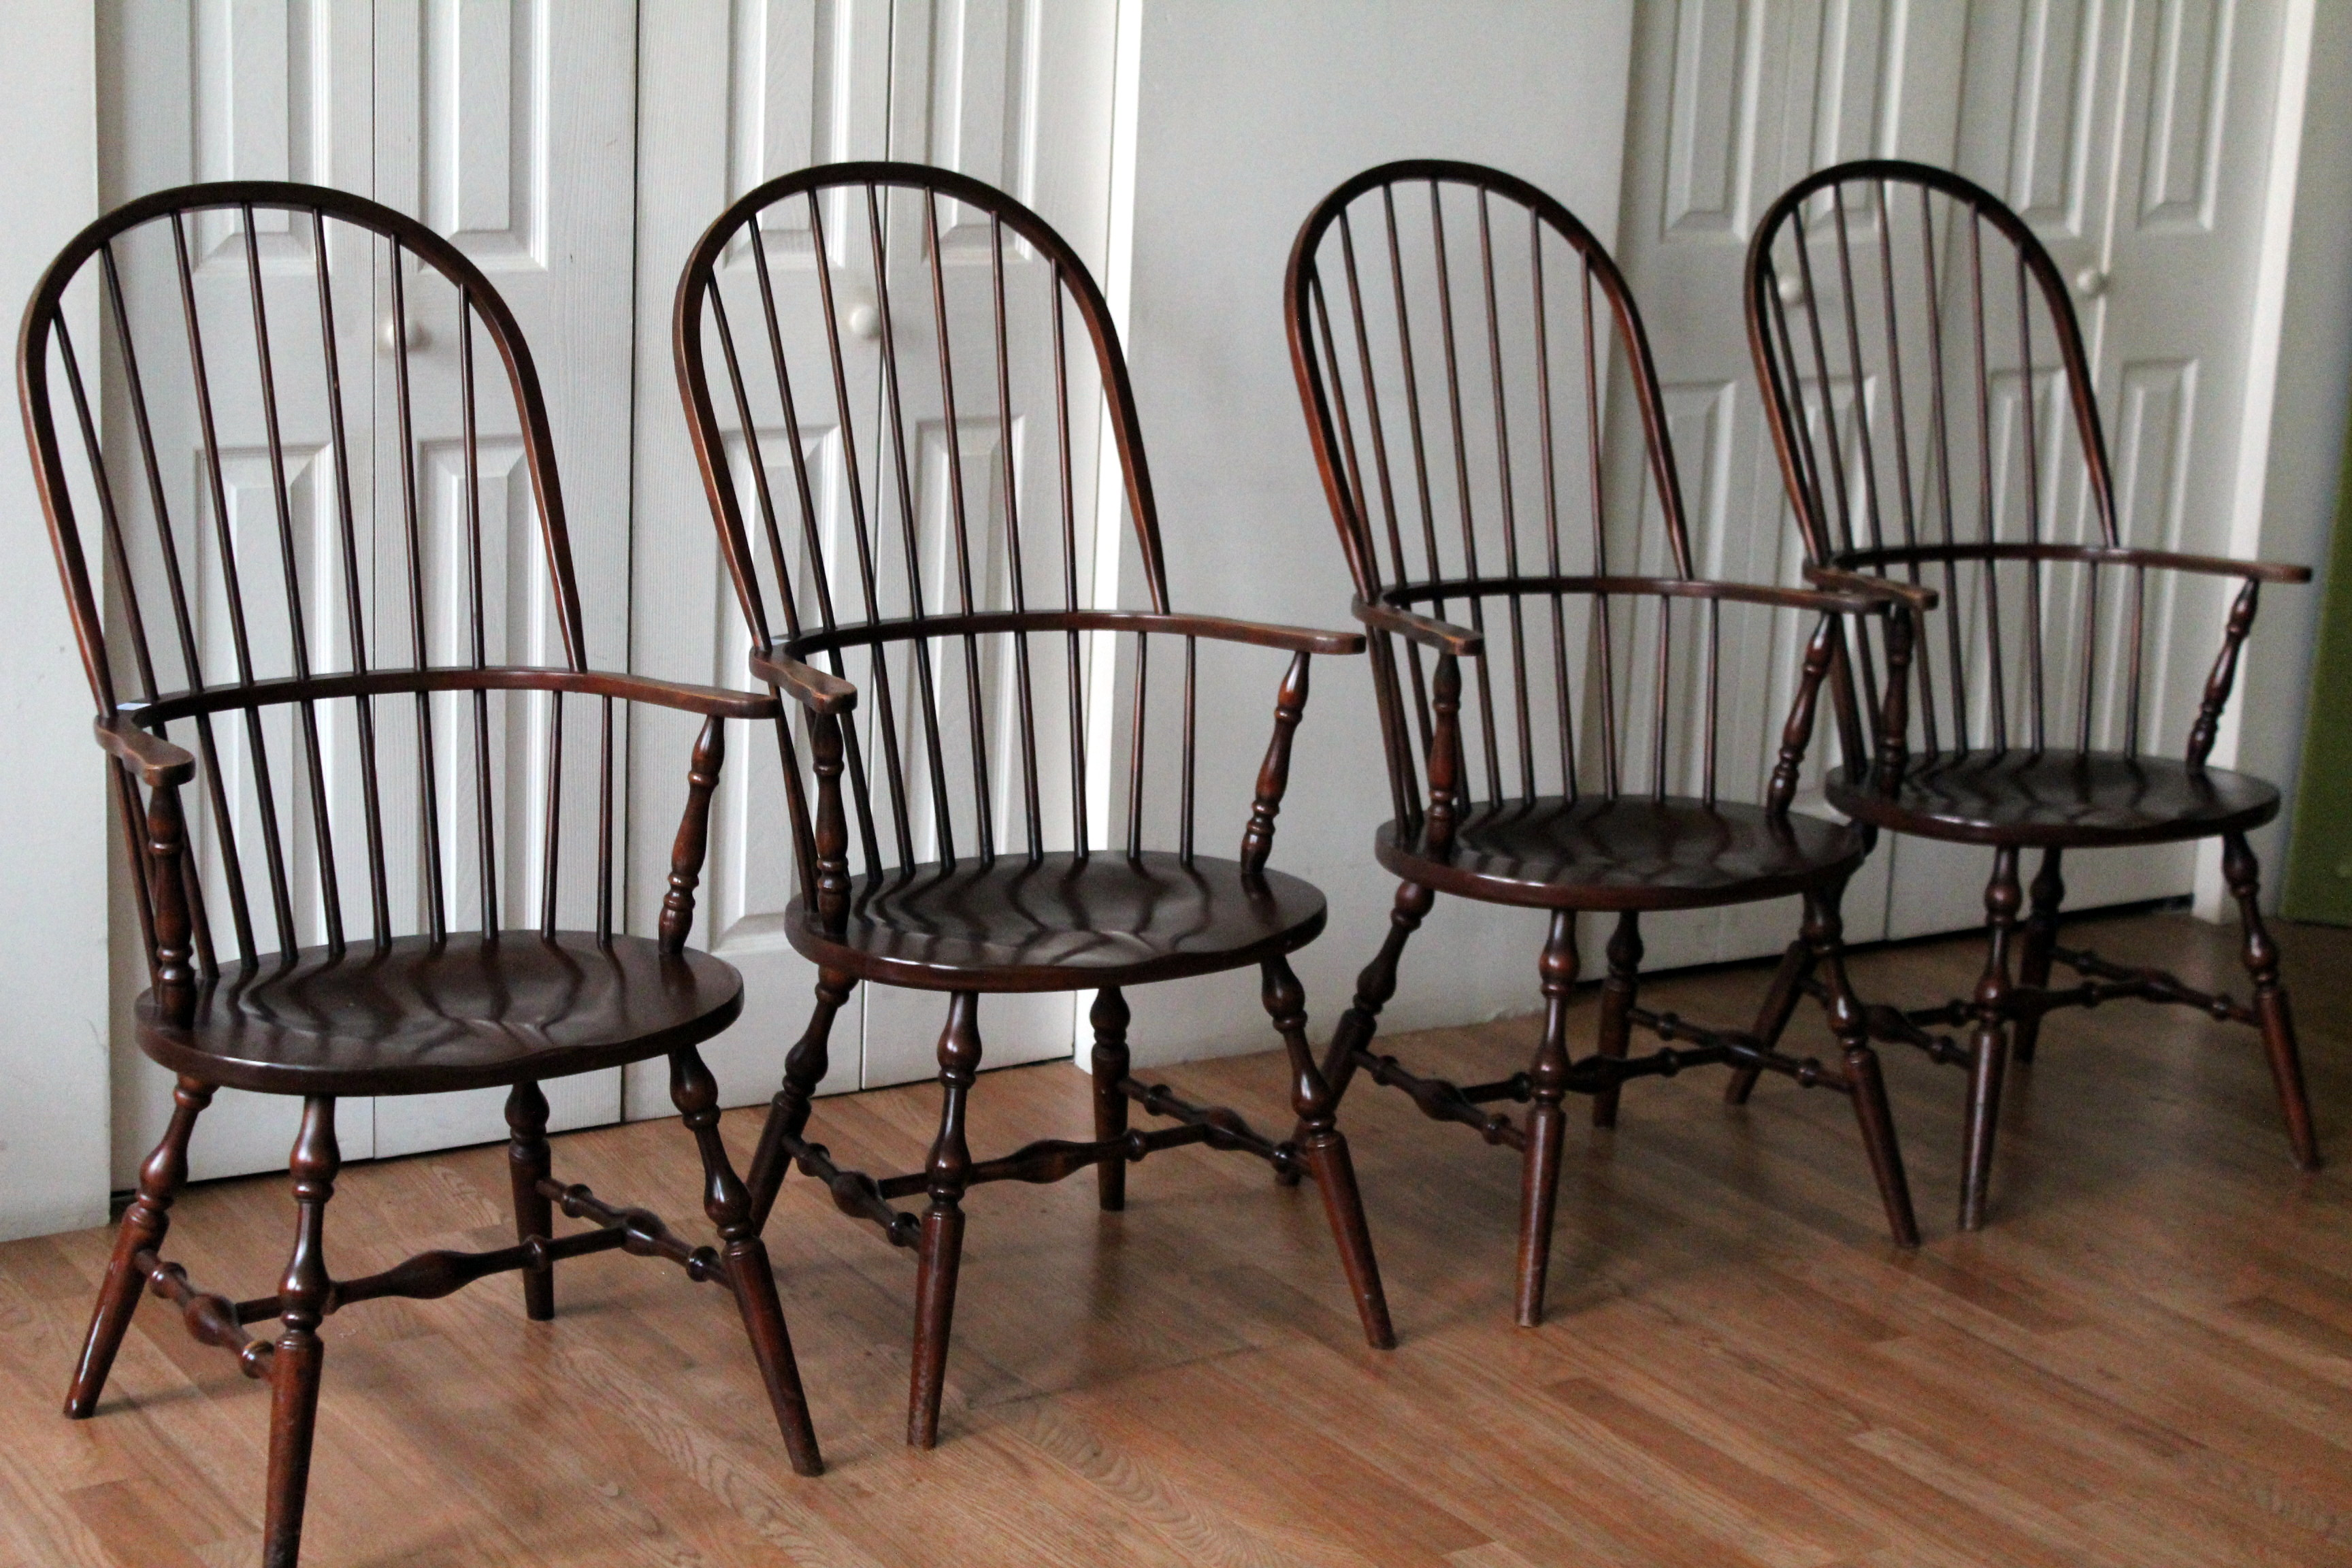 habersham sackback windsor chairs - Habersham Furniture